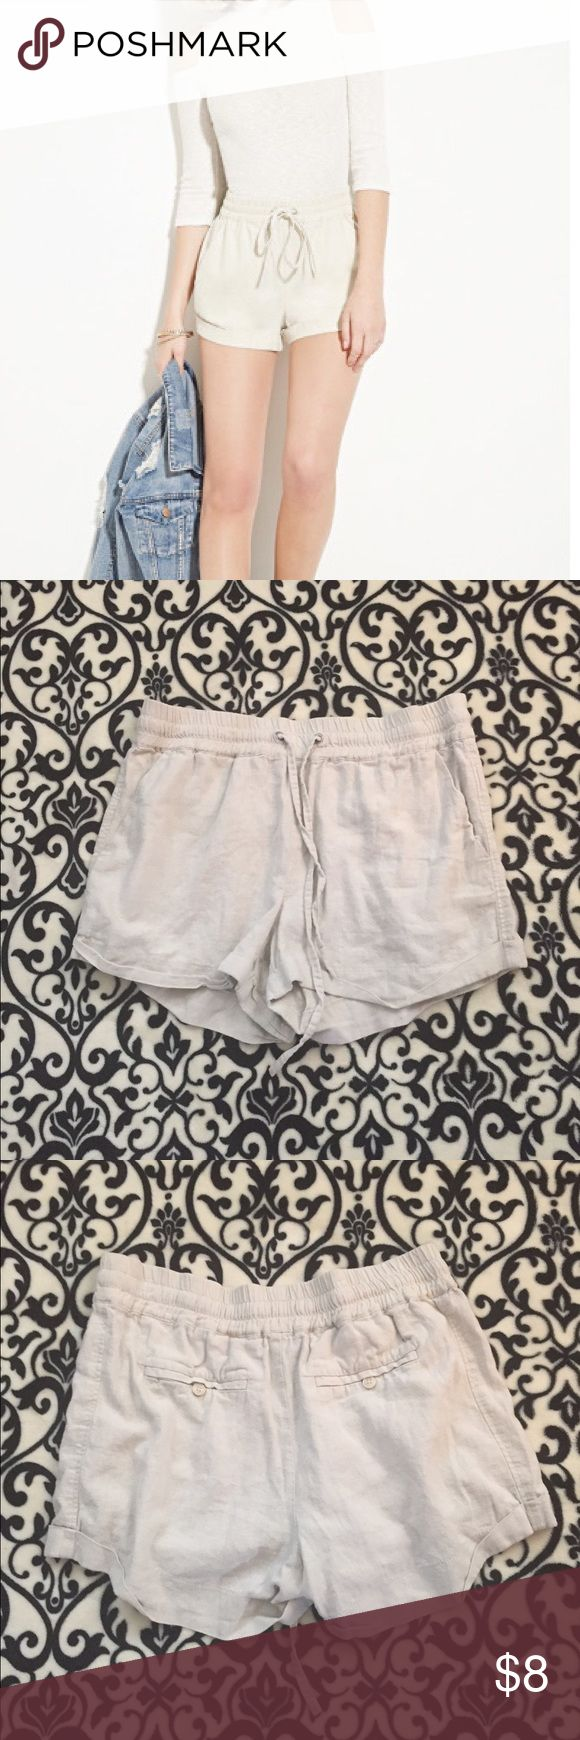 🔲Khaki Drawstring Fashion Shorts🔲 These have been worn at the most two times. However there is fraying on the pocket. See picture. Shorts